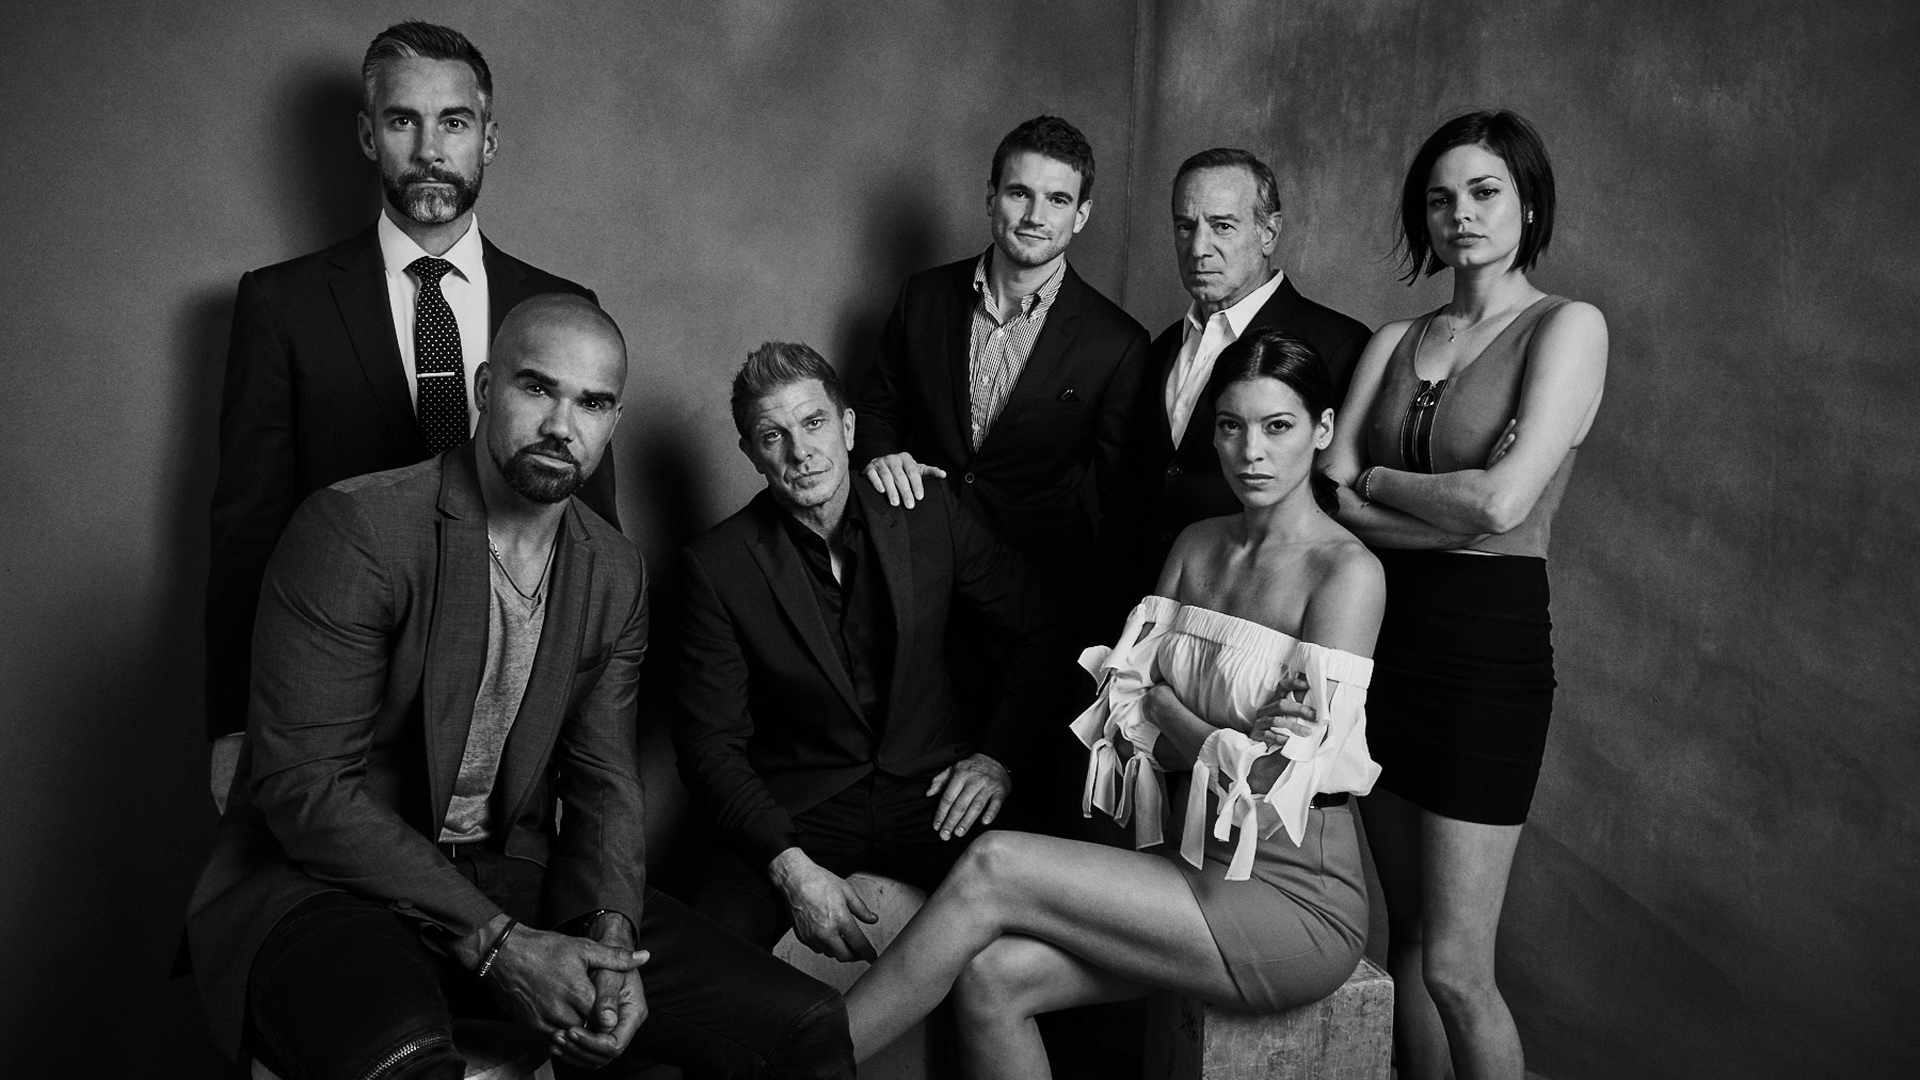 S.W.A.T.: Shemar Moore, Jay Harrington, Kenny Johnson, Alex Russell, Peter Onorati, Lina Esco, and Stephanie Sigman